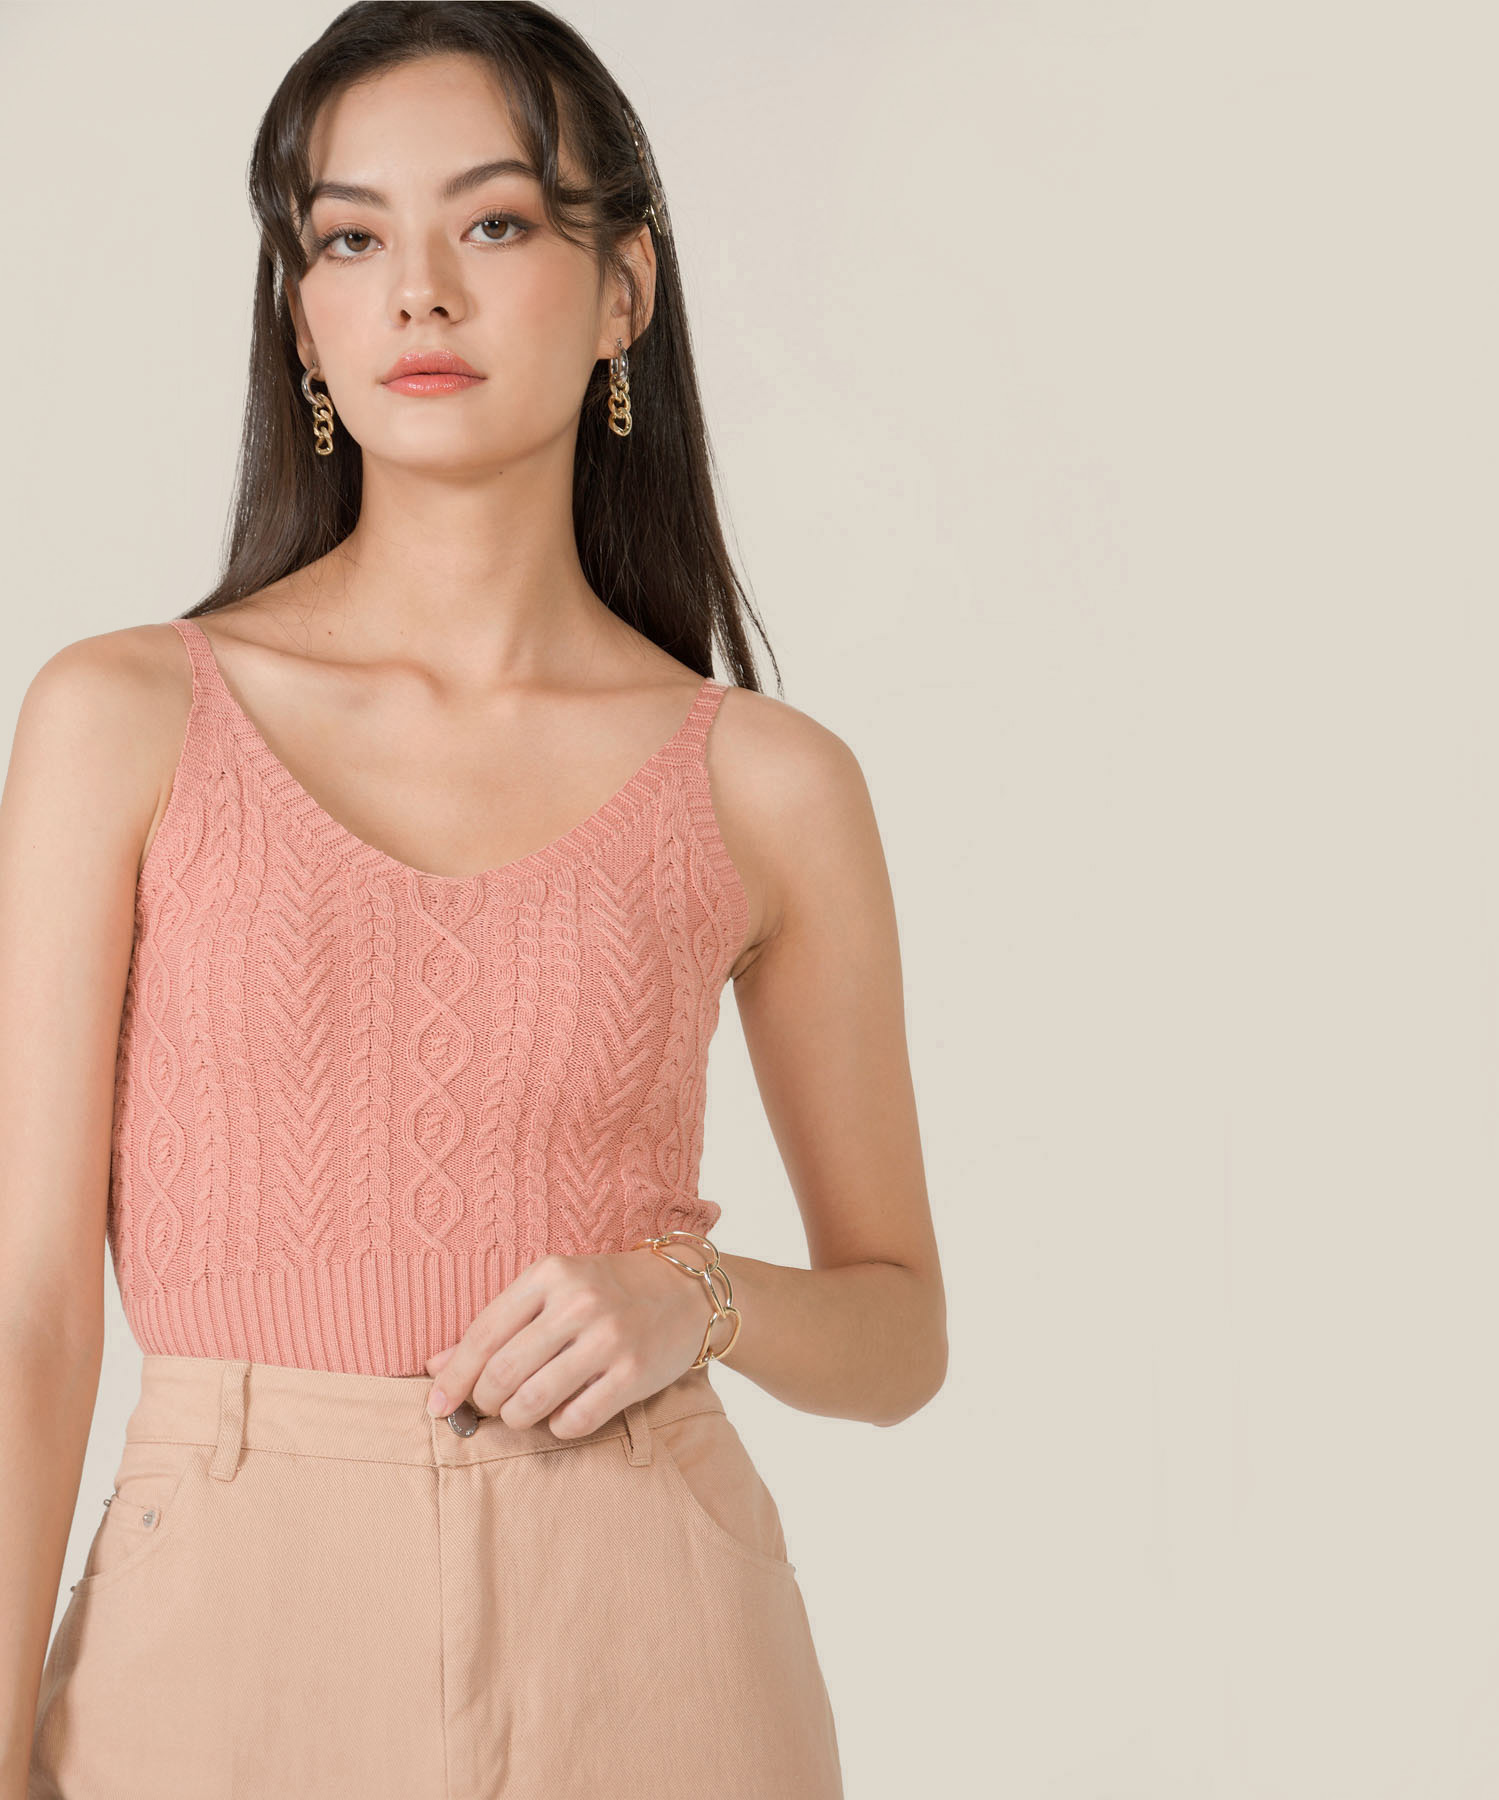 kahlua-cable-knit-cropped-top-peach-pink-1